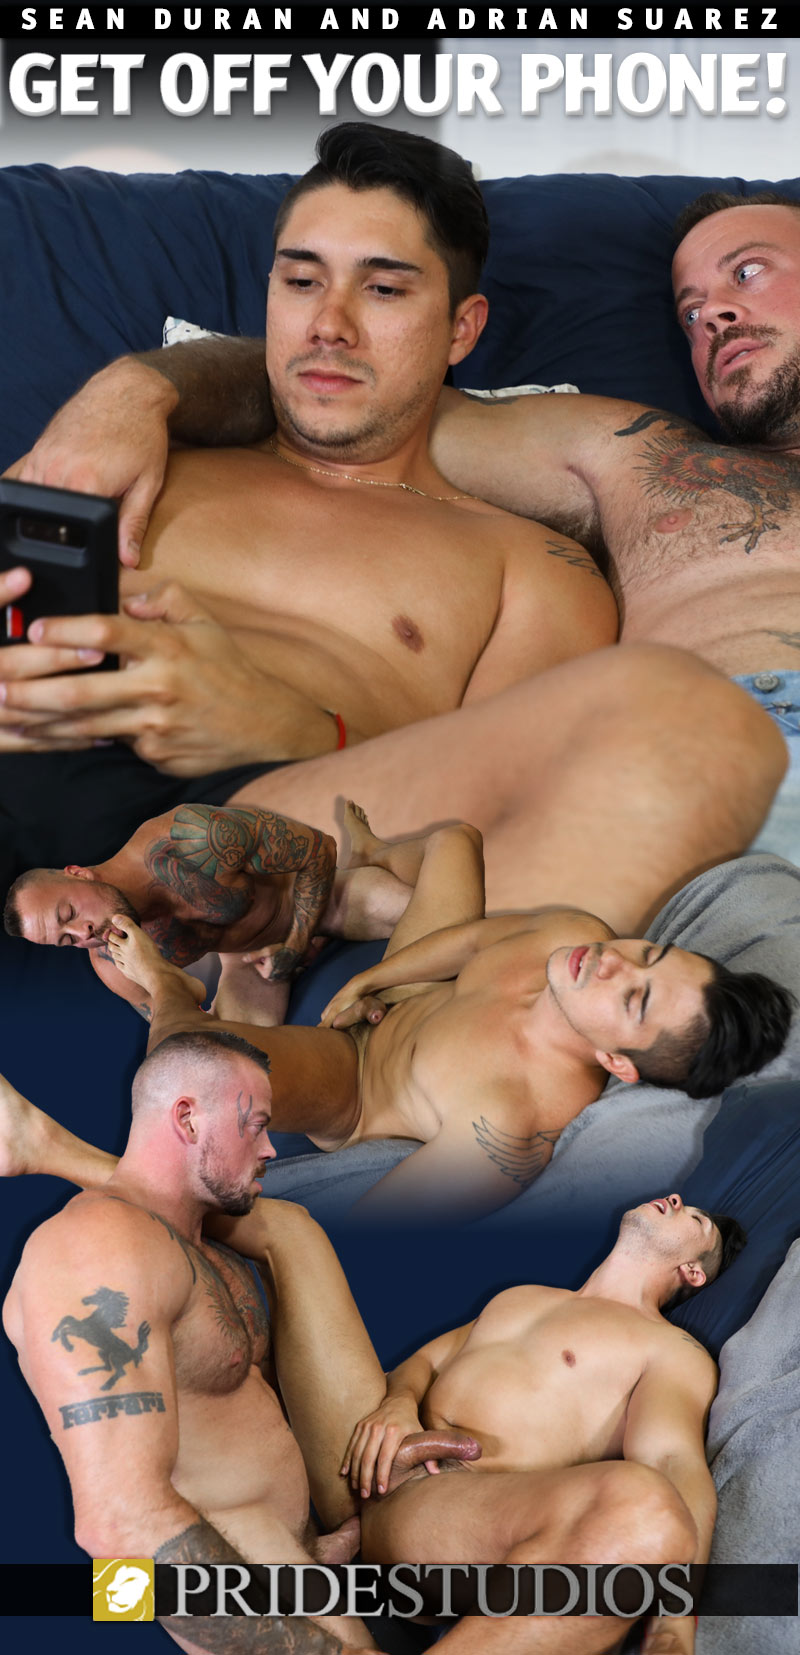 Get Off Your Phone! (Sean Duran Fucks Adrian Suarez) at PrideStudios